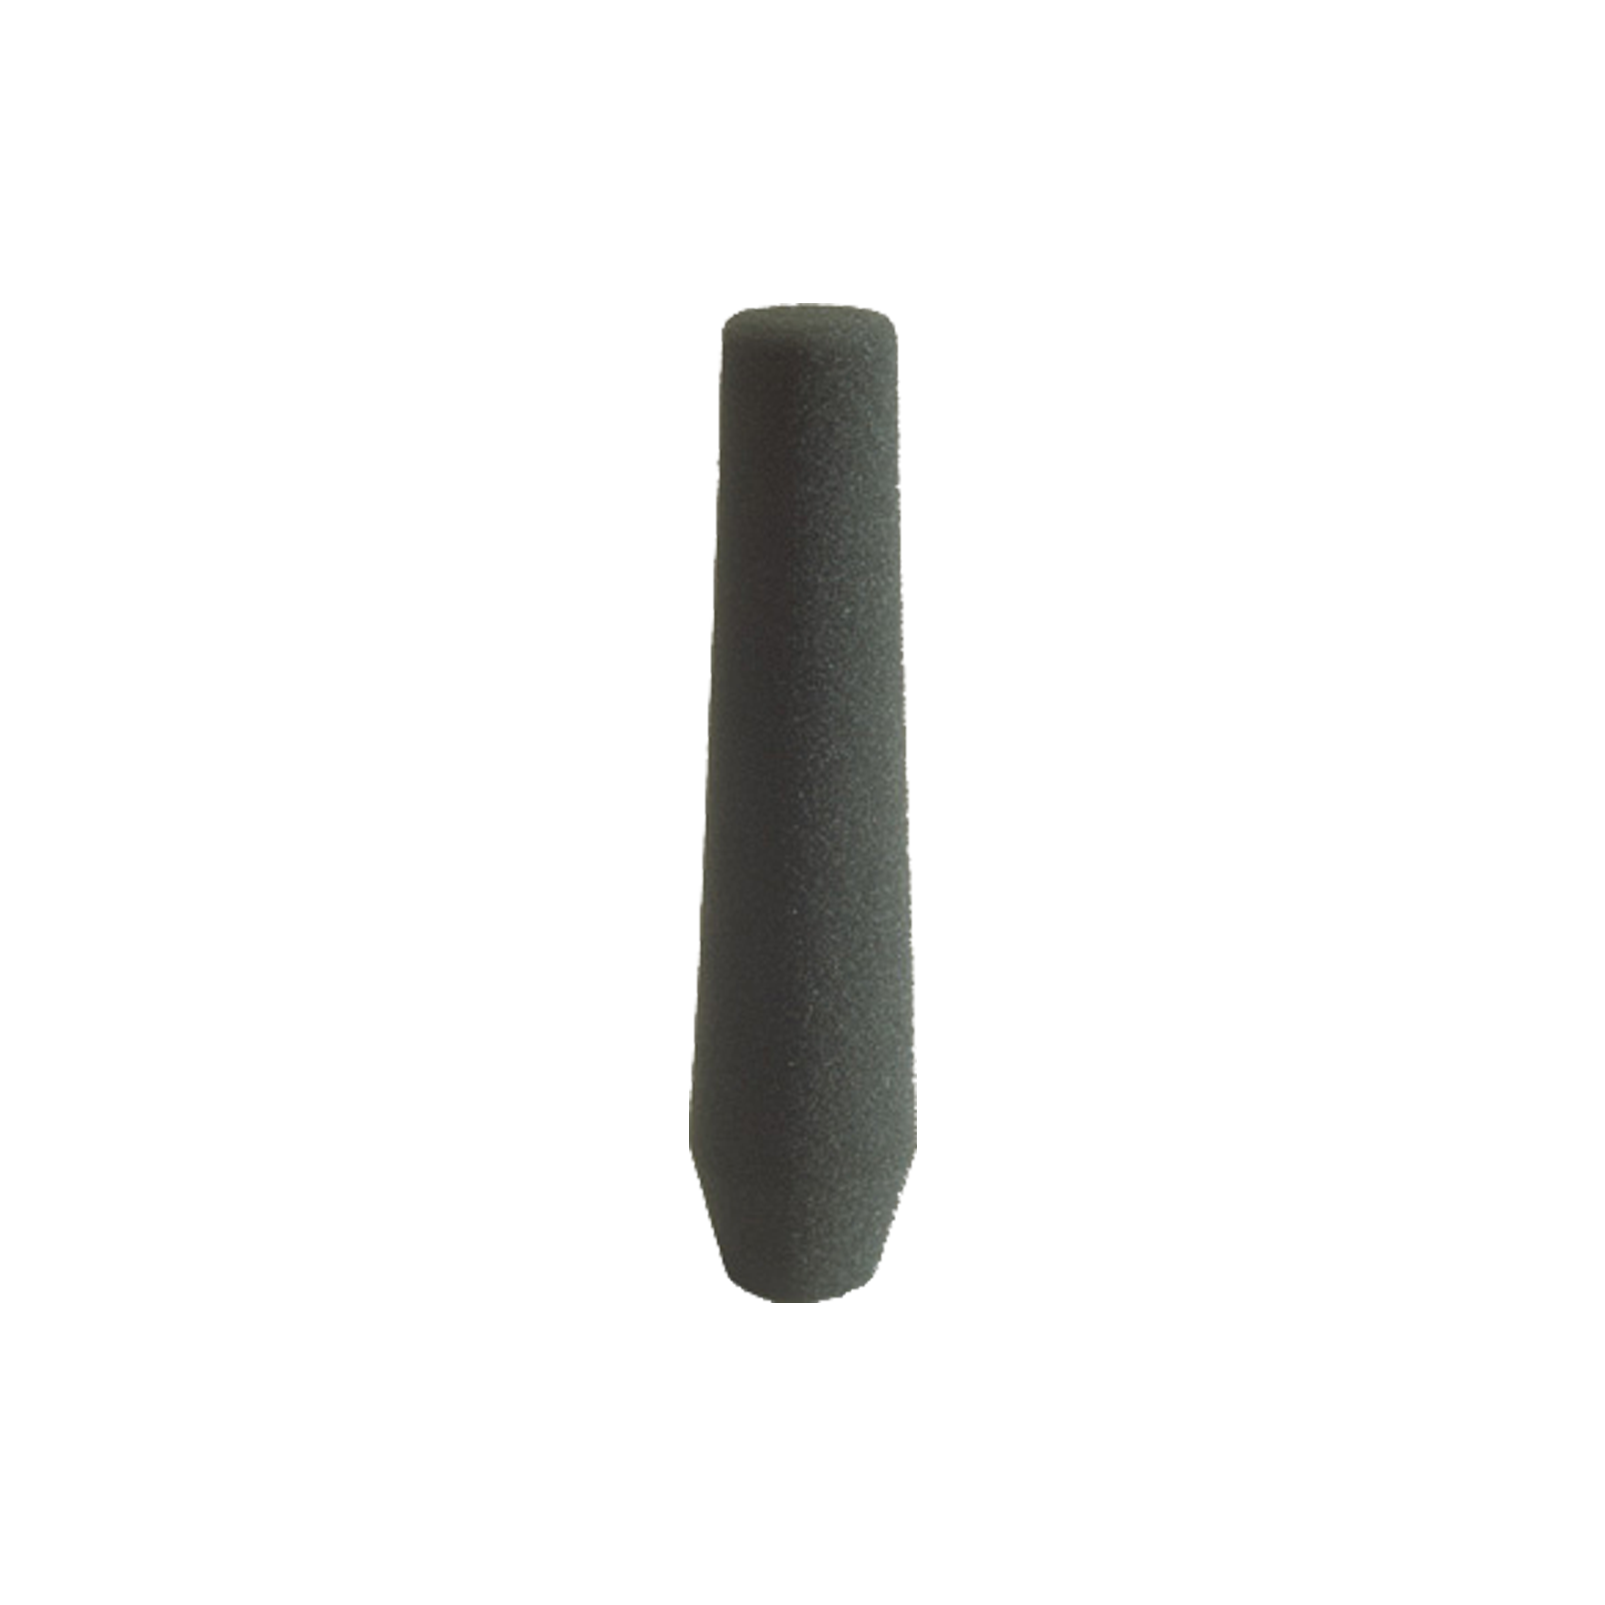 W68 - Black - Windscreen for use with C568 B - Hero